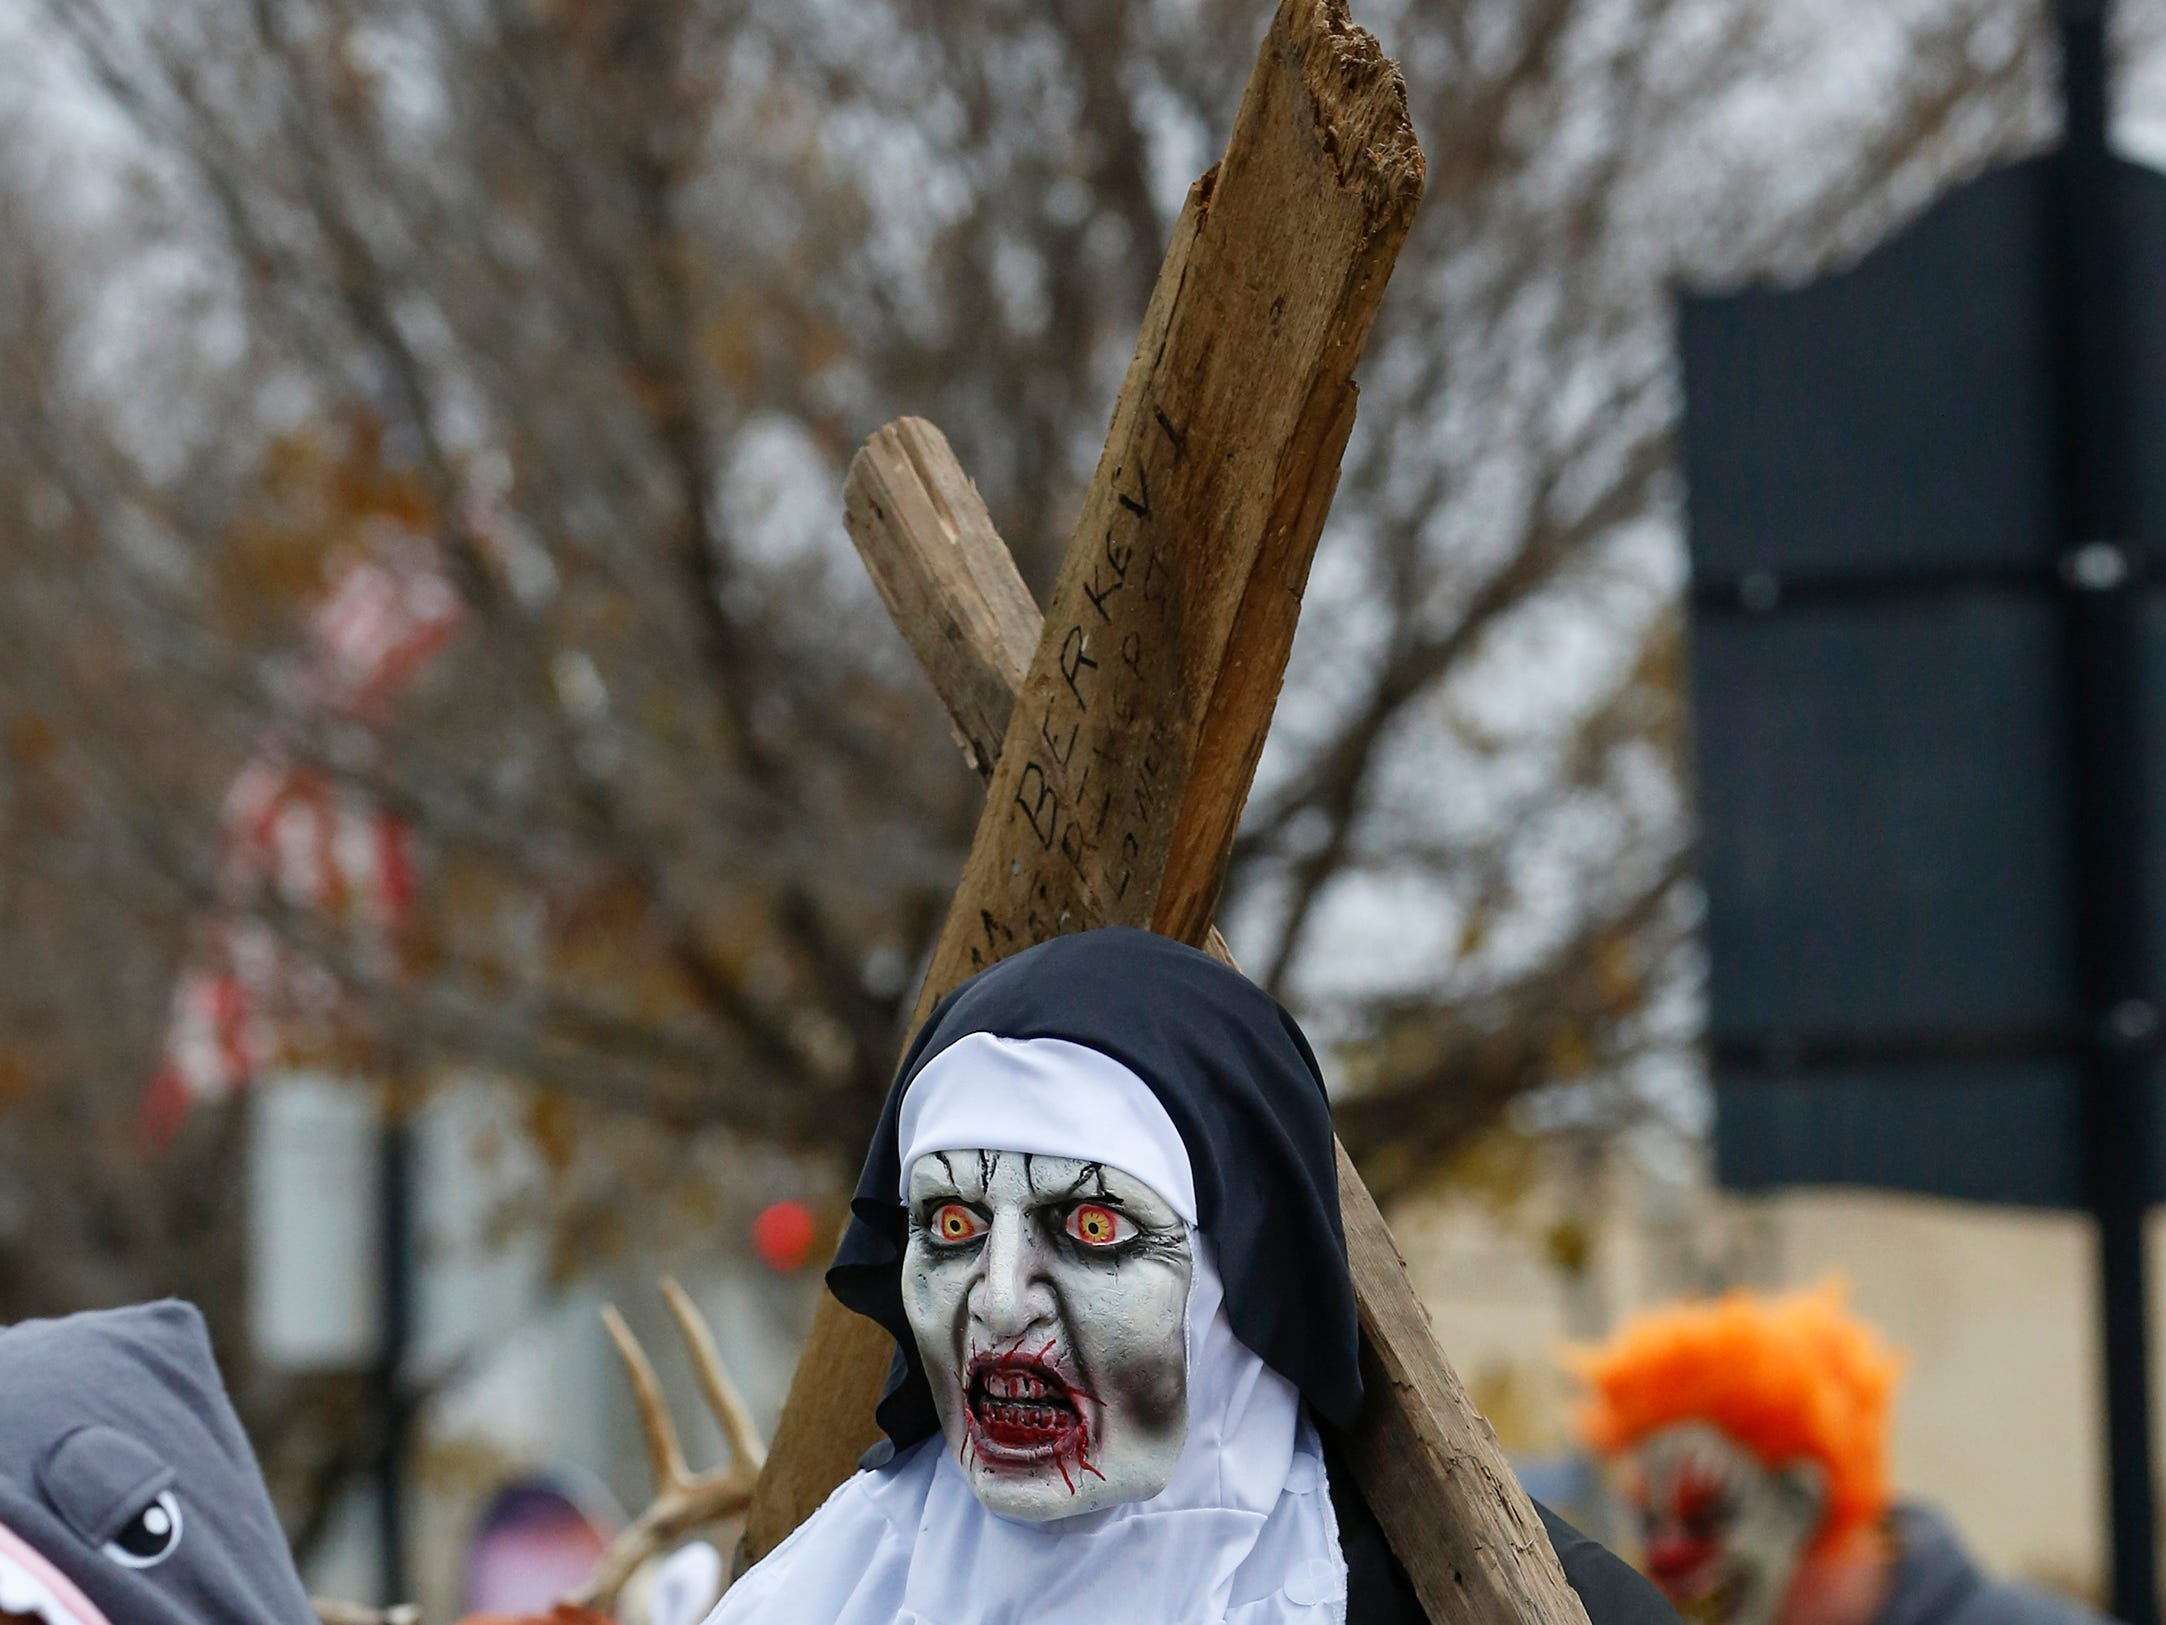 Jimmy Berkevich, of Beaver Dam, walks around as a scary nun during Downtown Trick or Treat Saturday, October 27, 2018, in Two Rivers, Wis. Joshua Clark/USA TODAY NETWORK-Wisconsin